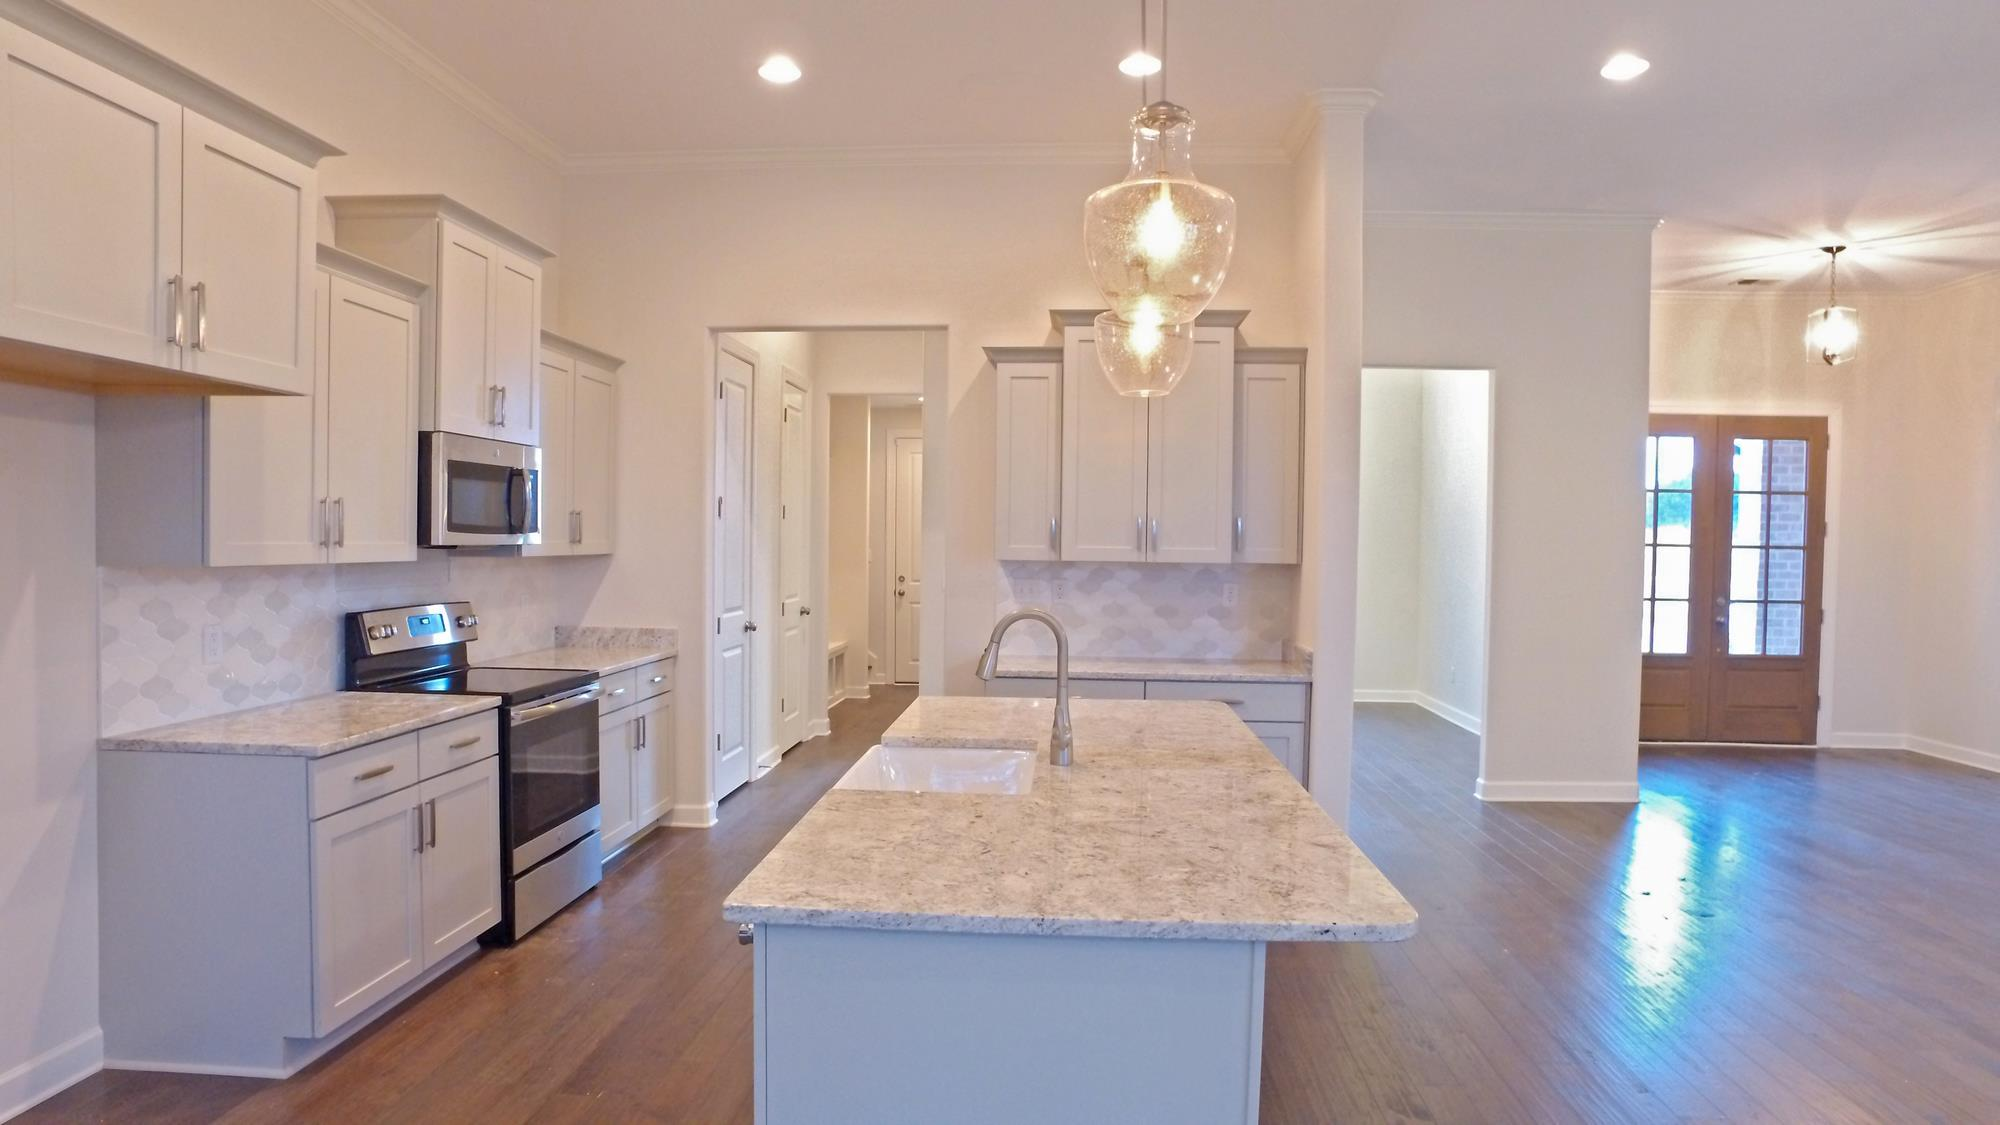 Kitchen featured in the Delaney By Regency Homebuilders in Memphis, TN